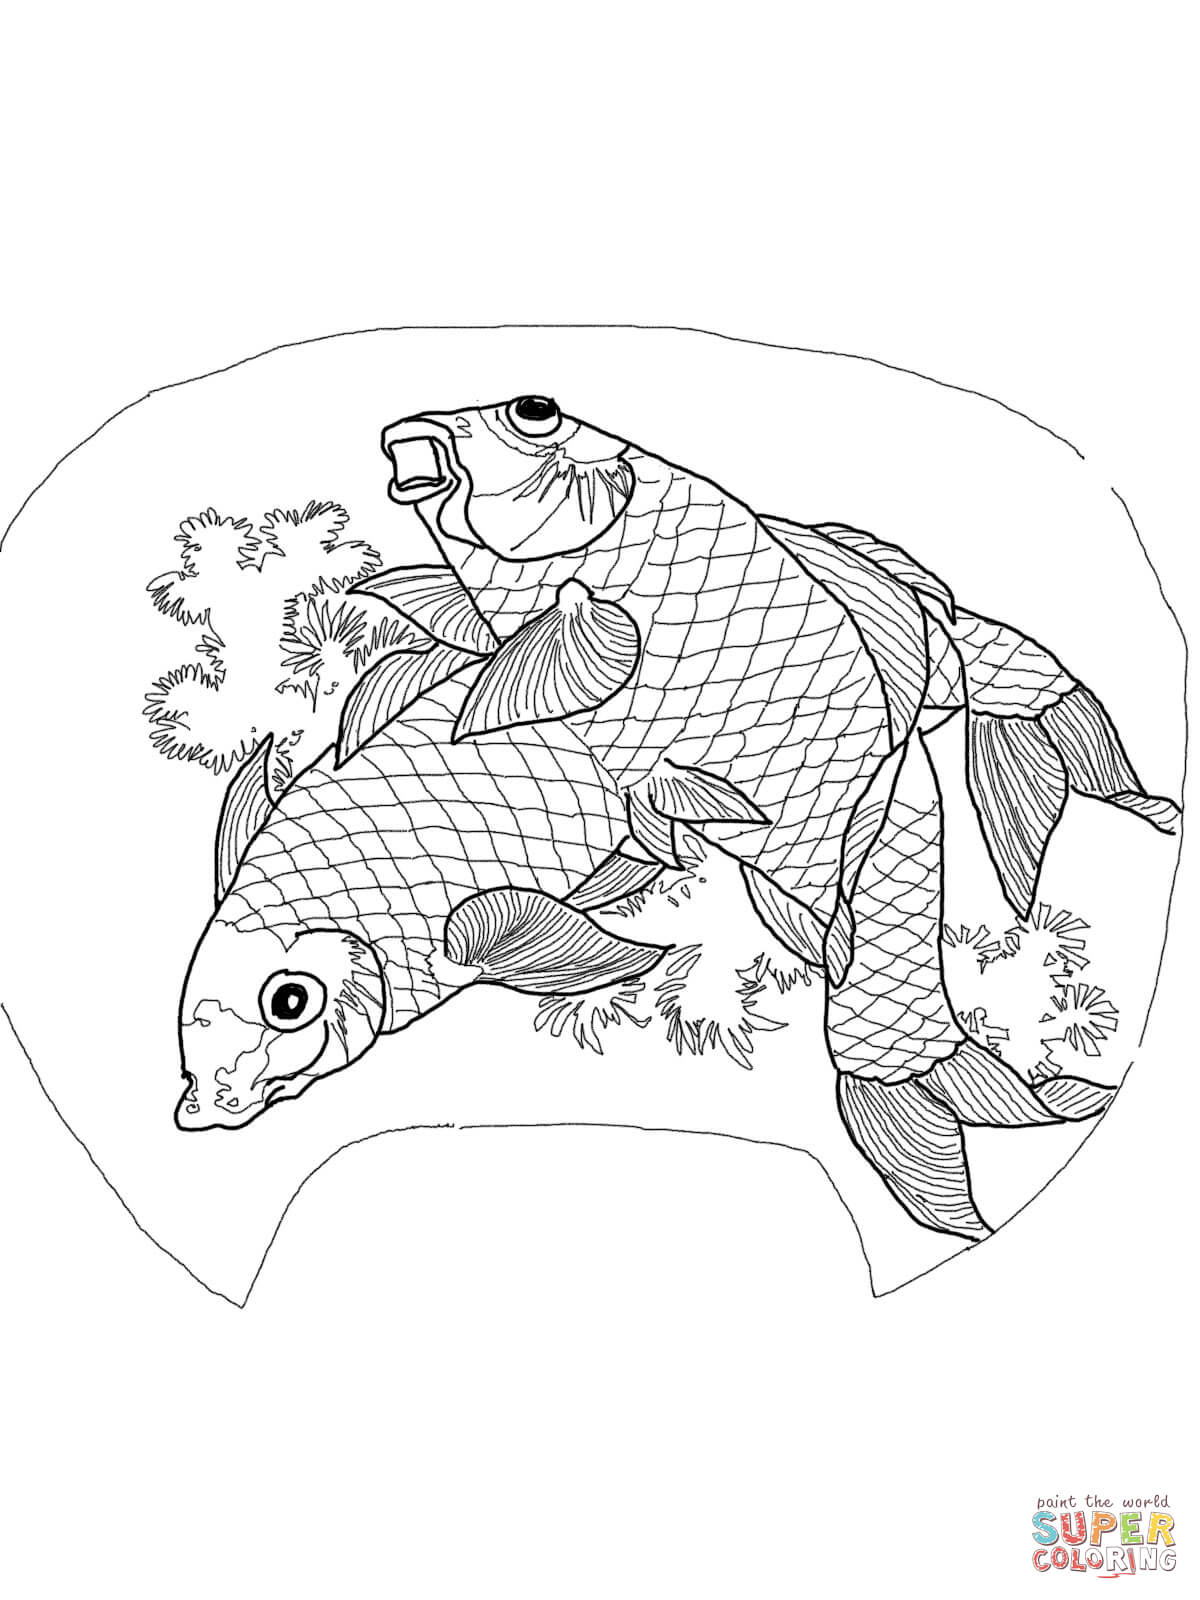 Koi Carp Coloring Download Koi Carp Coloring